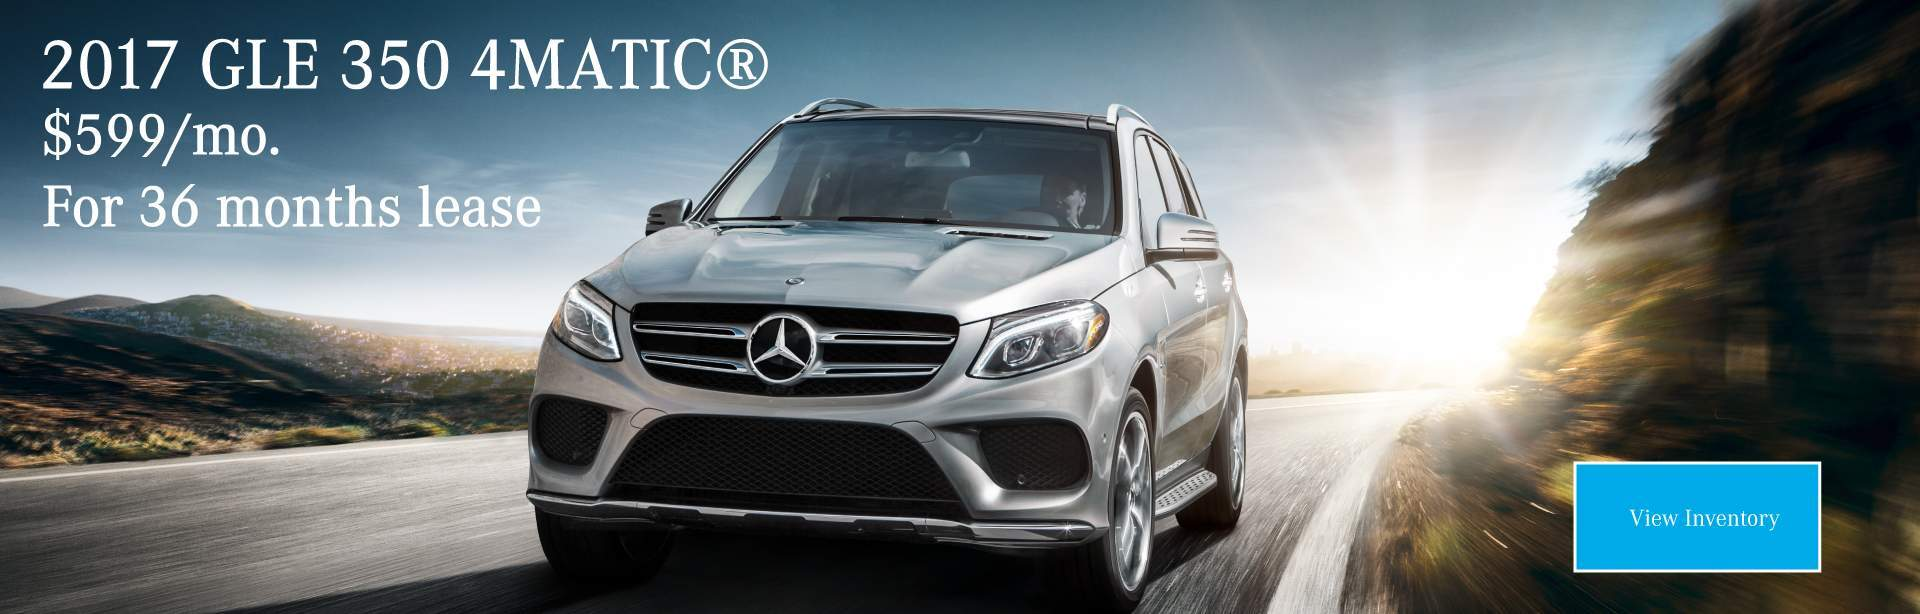 2017 GLE 350 SUV 4MATIC®